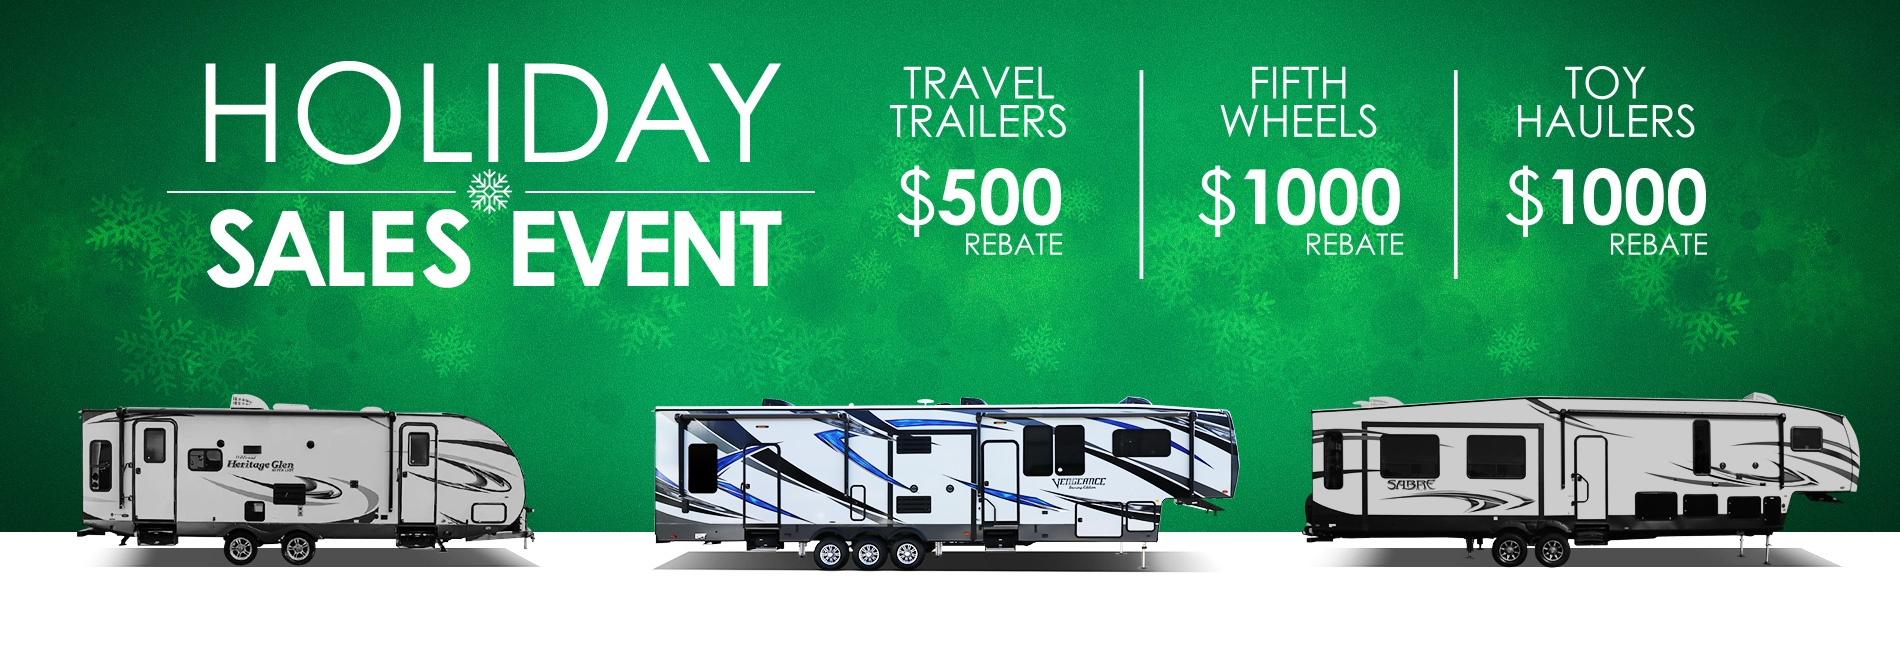 Creative RV - Holiday Sales Event Toy Haulers